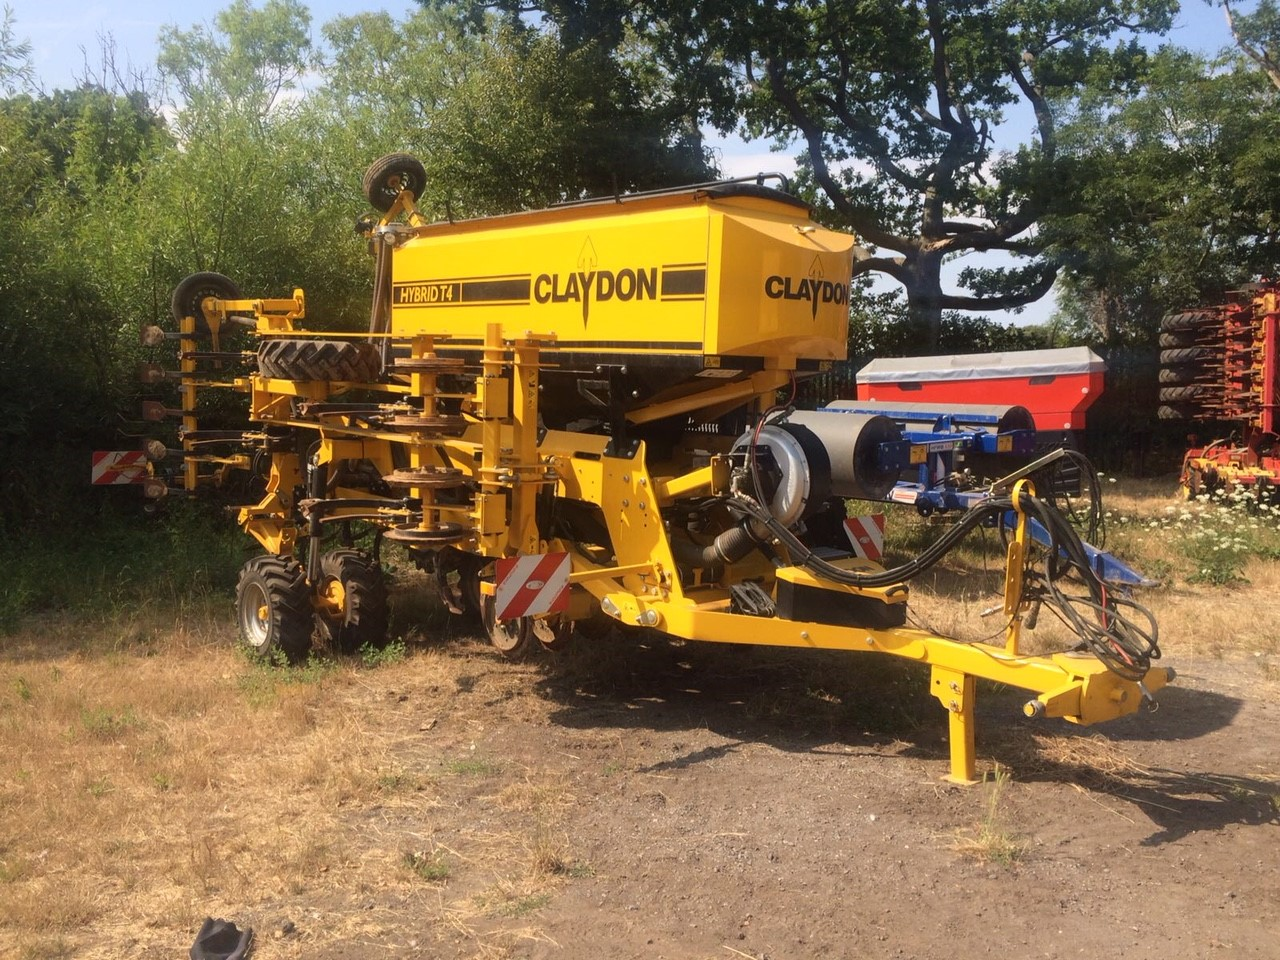 2017 NEW OTHER IMPS CLAYDON HYBRID T4 SEED DRILL